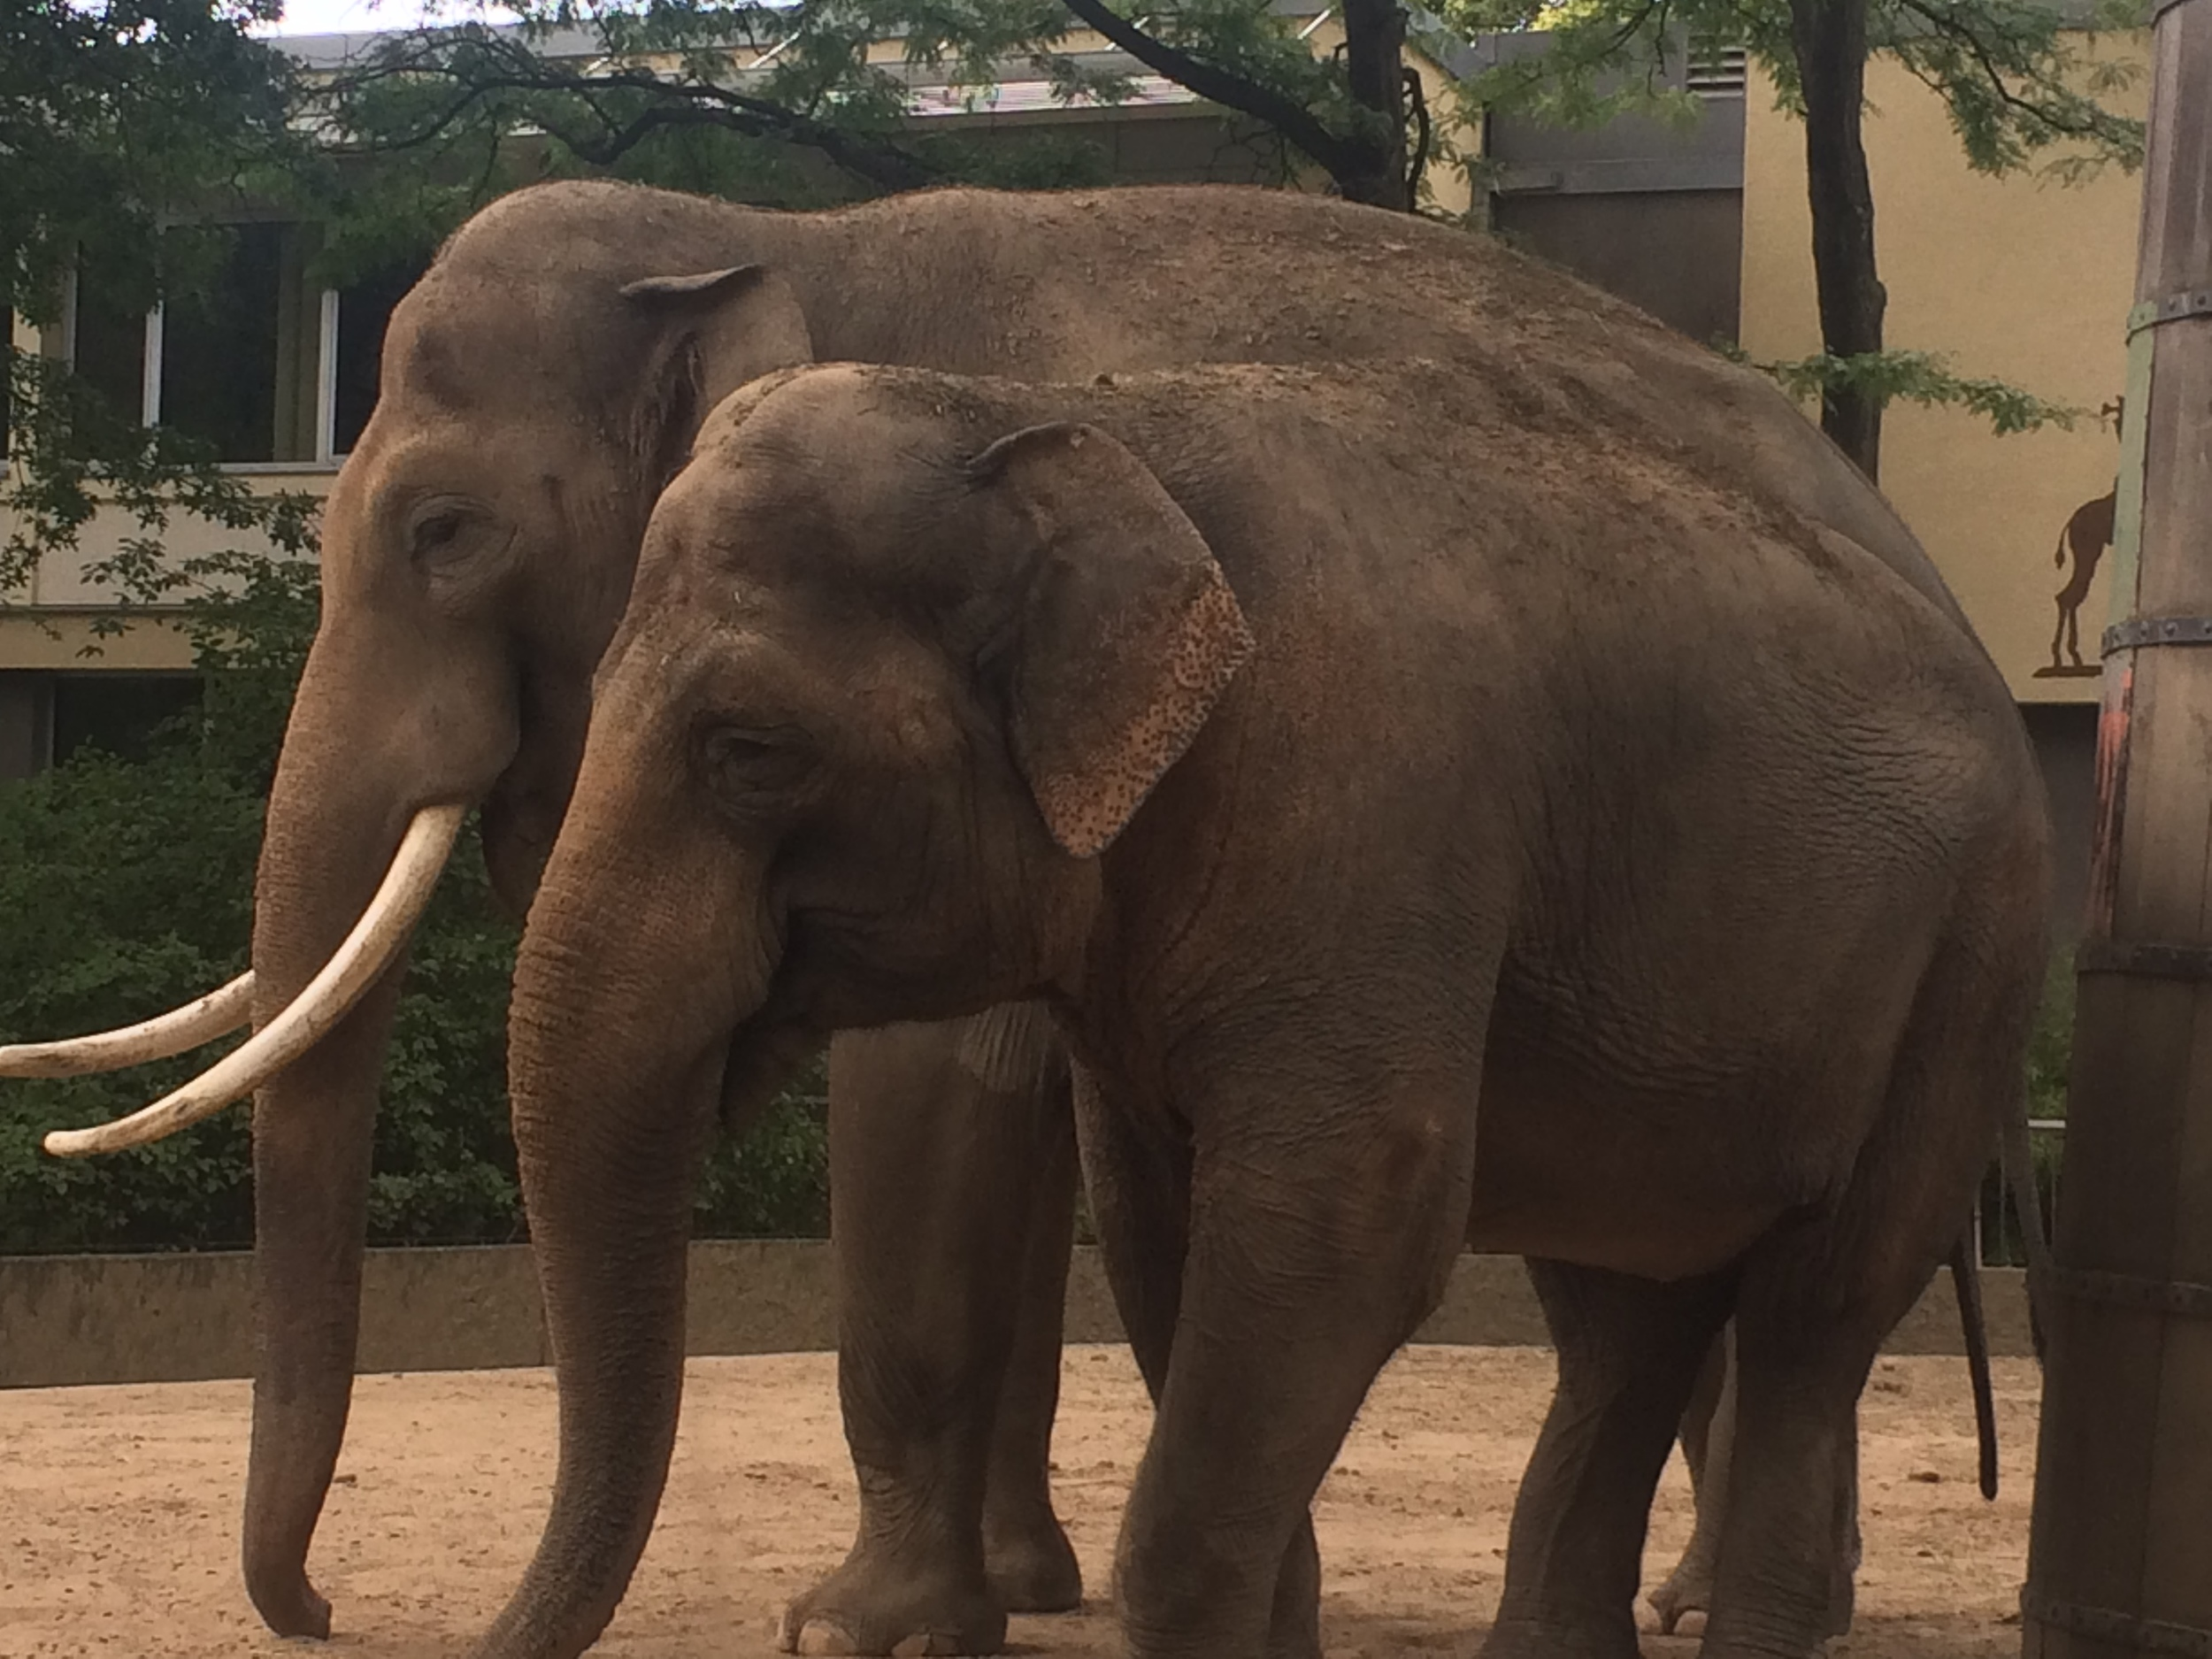 I went to the zoo. these are asian elephant i know the elephants names. the baby is called Pablo and the dad is called Victor.